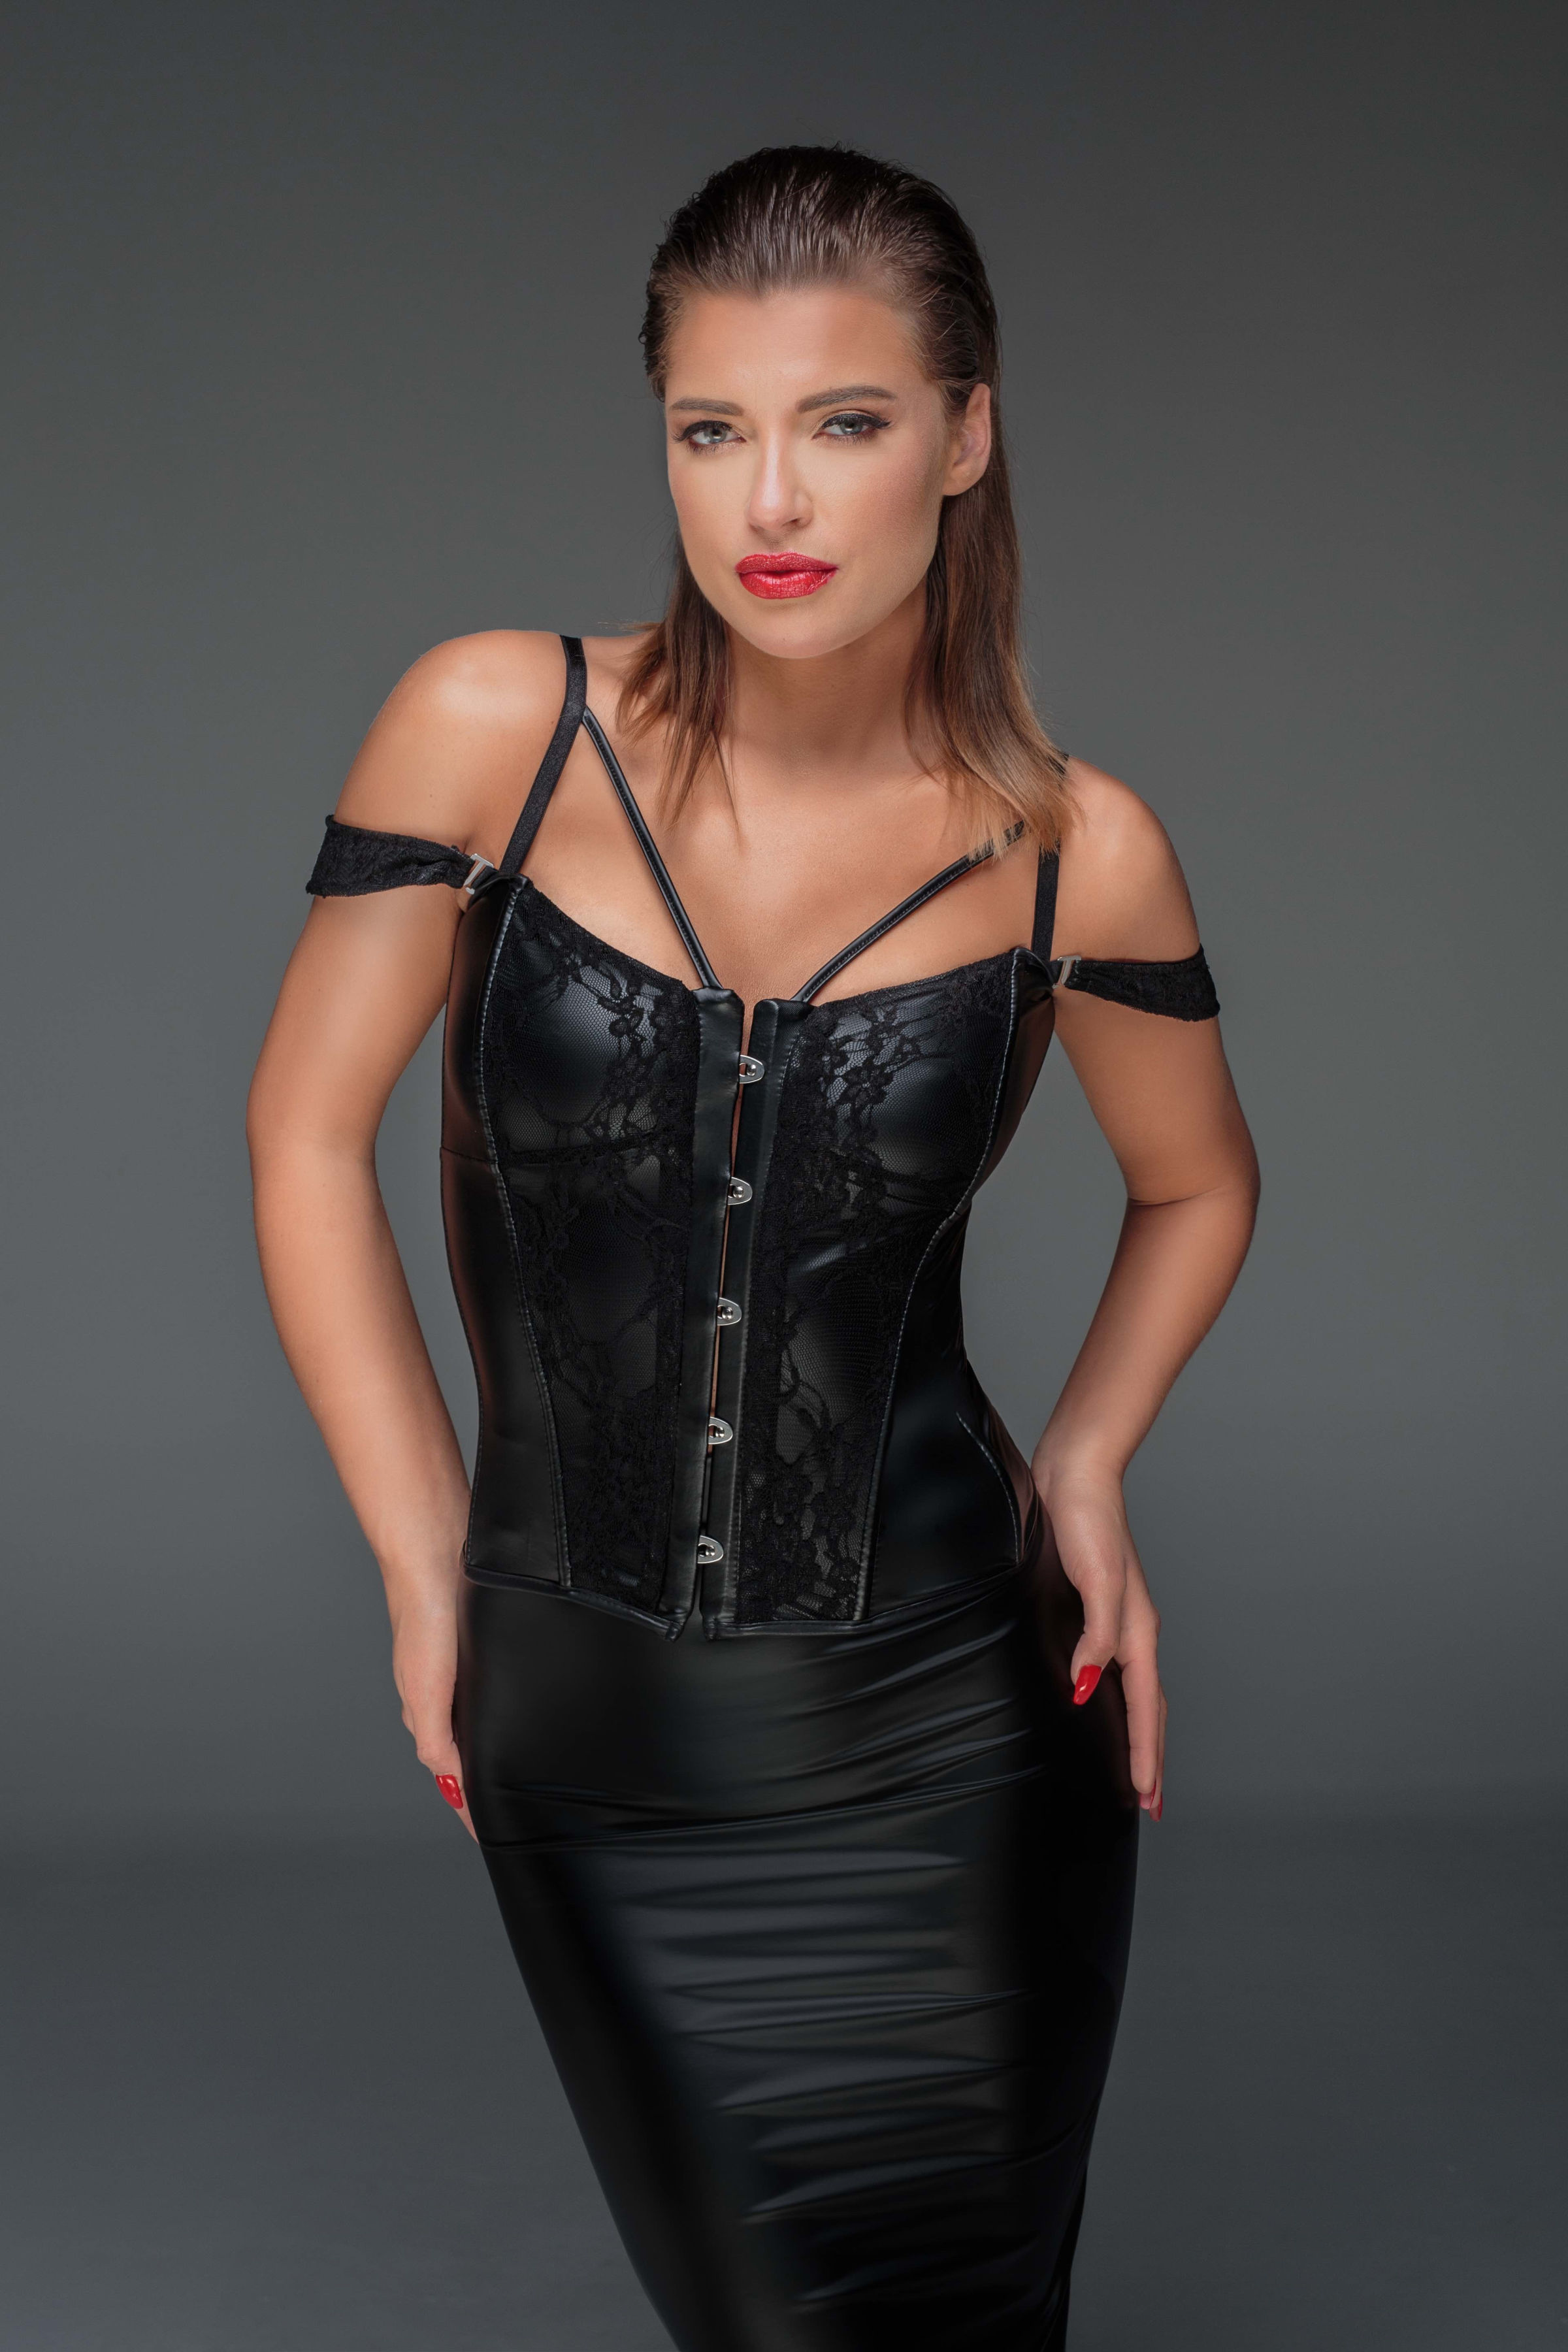 Noir Handmade F159 Corset with Lace and Powerwetlook with Detachable Straps XL